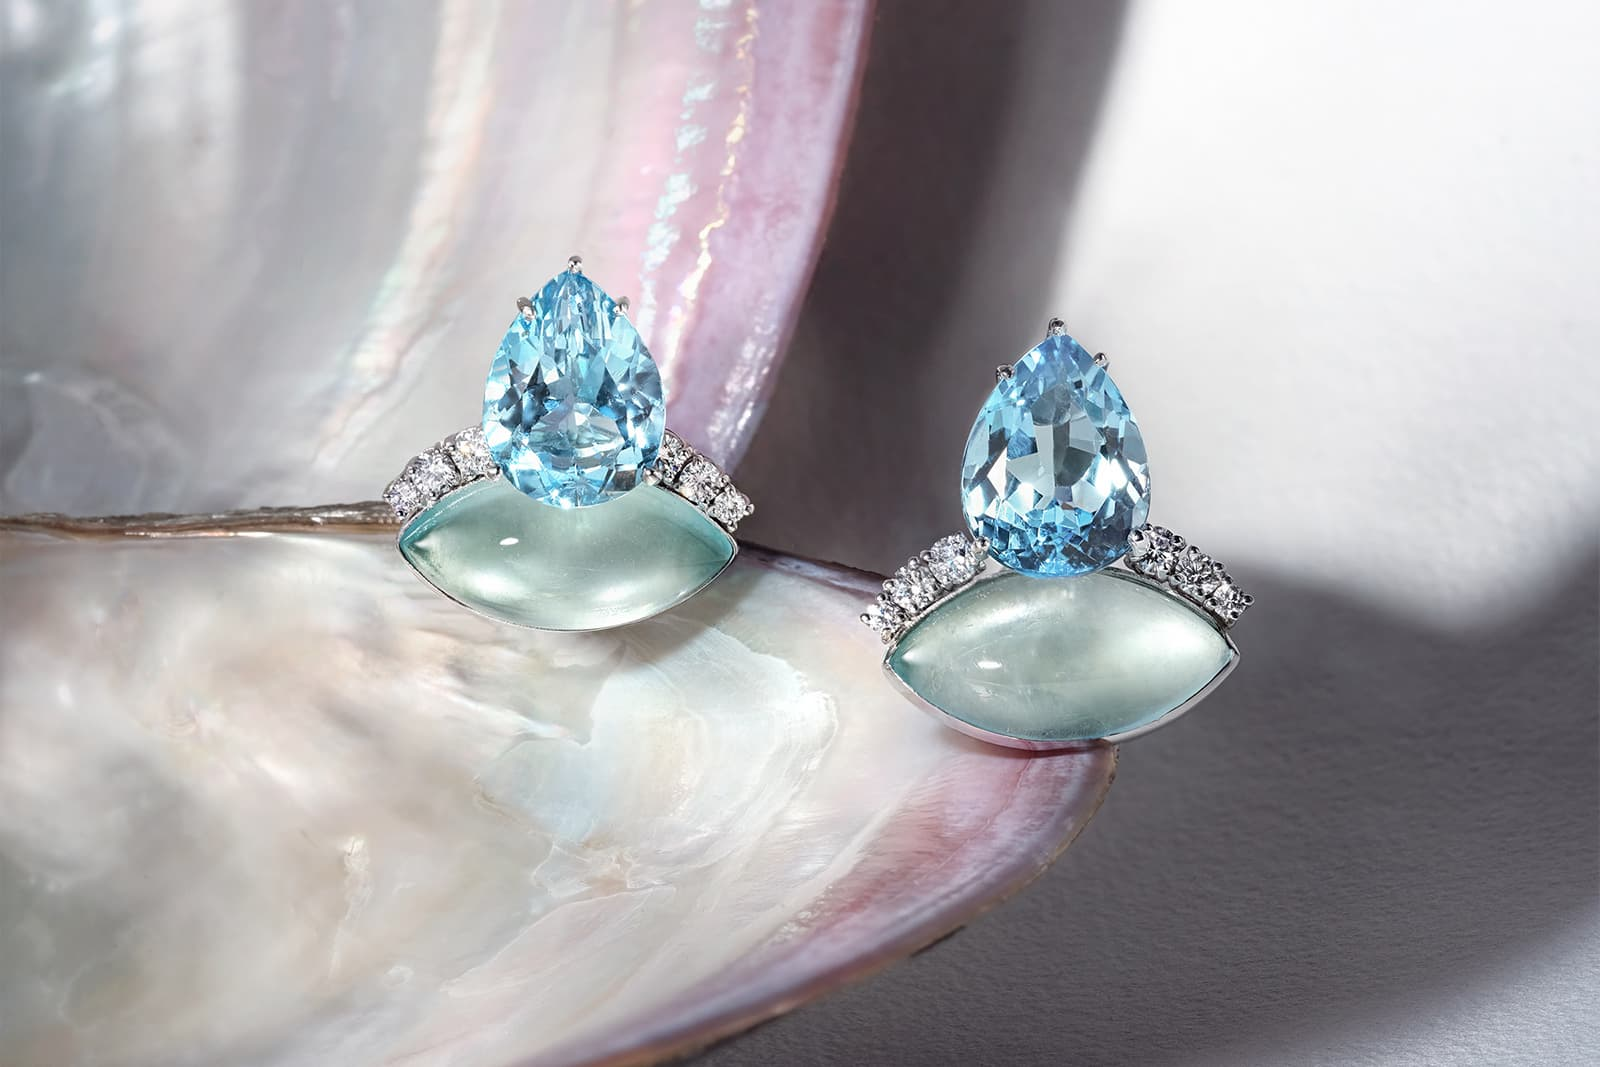 Sail Away With Me earrings with pear-shaped London blue topaz, marquise-shaped aquamarine cabochon and 1.36cts of white diamonds